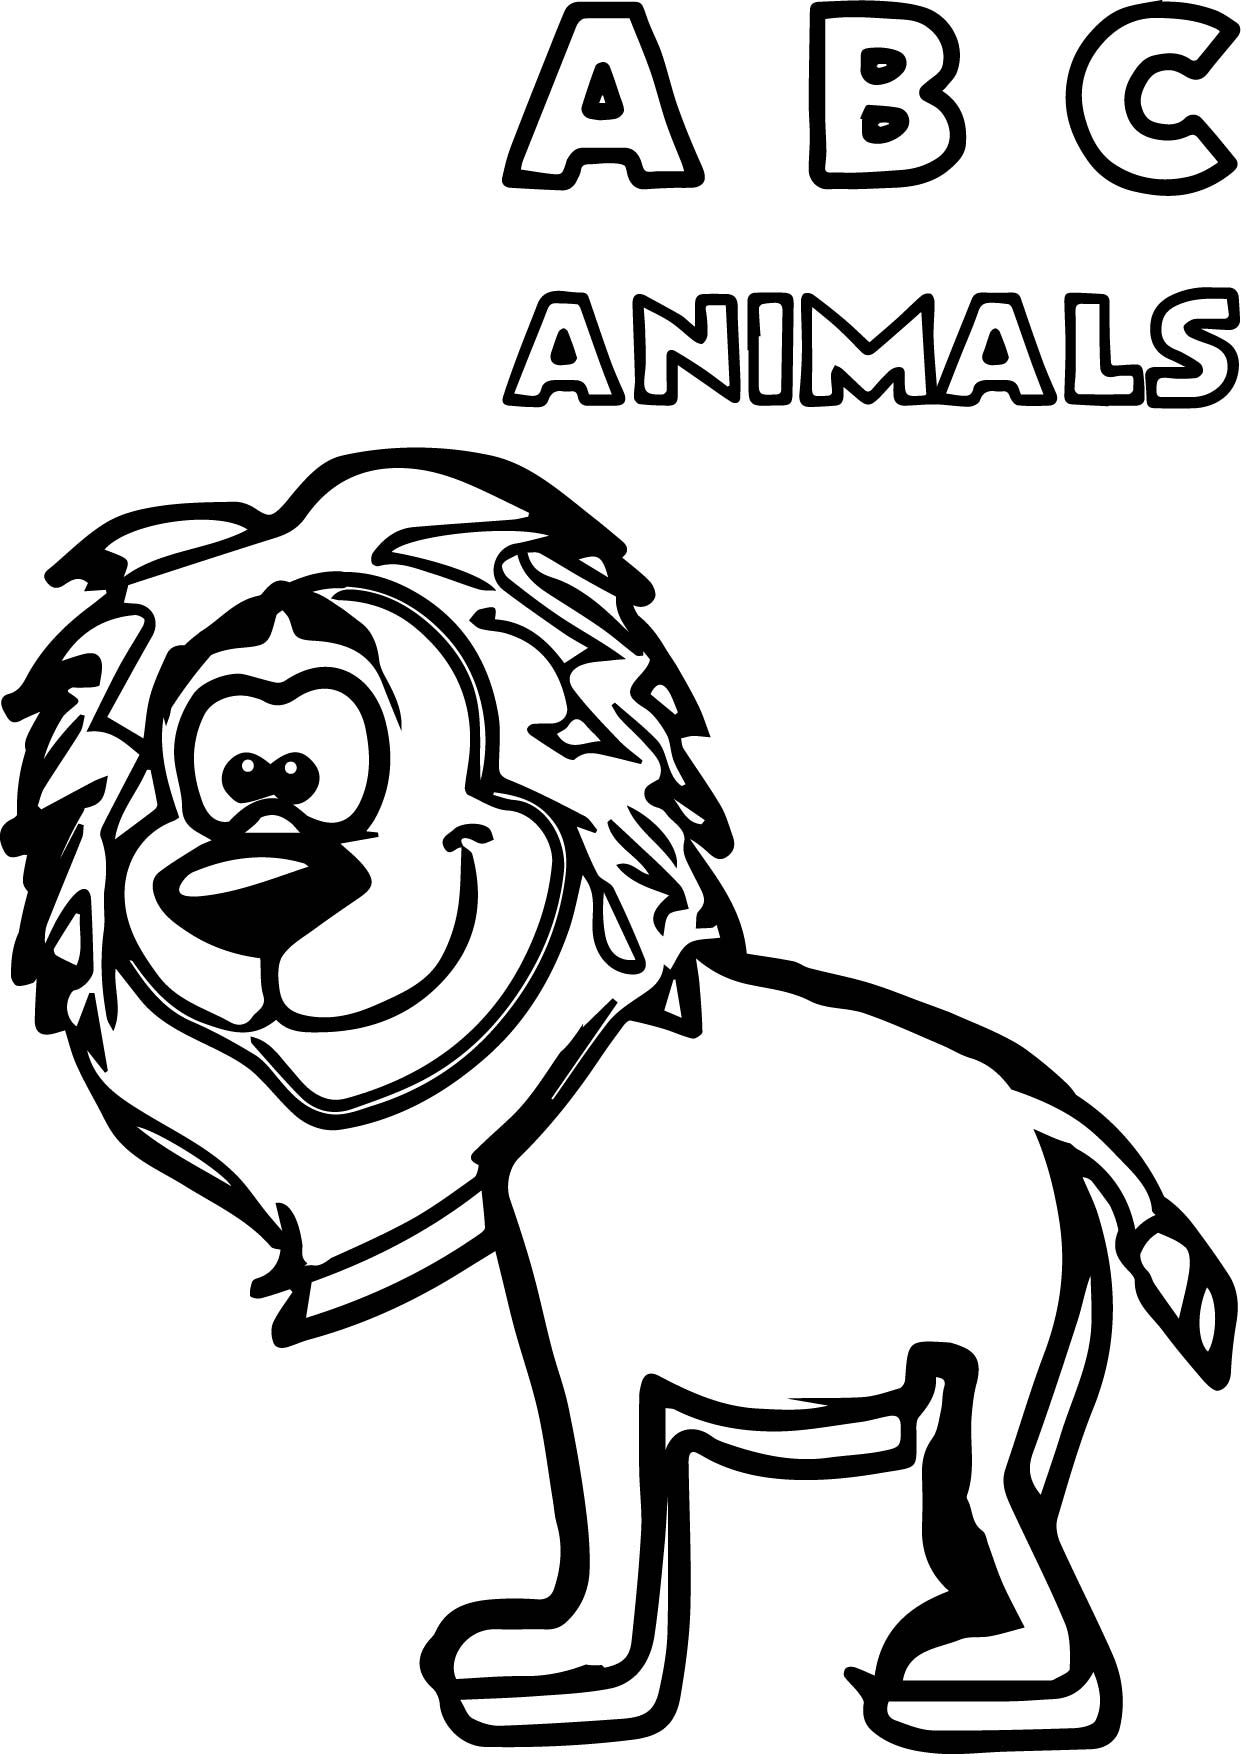 Abc Animals Lion Coloring Page | Wecoloringpage.com